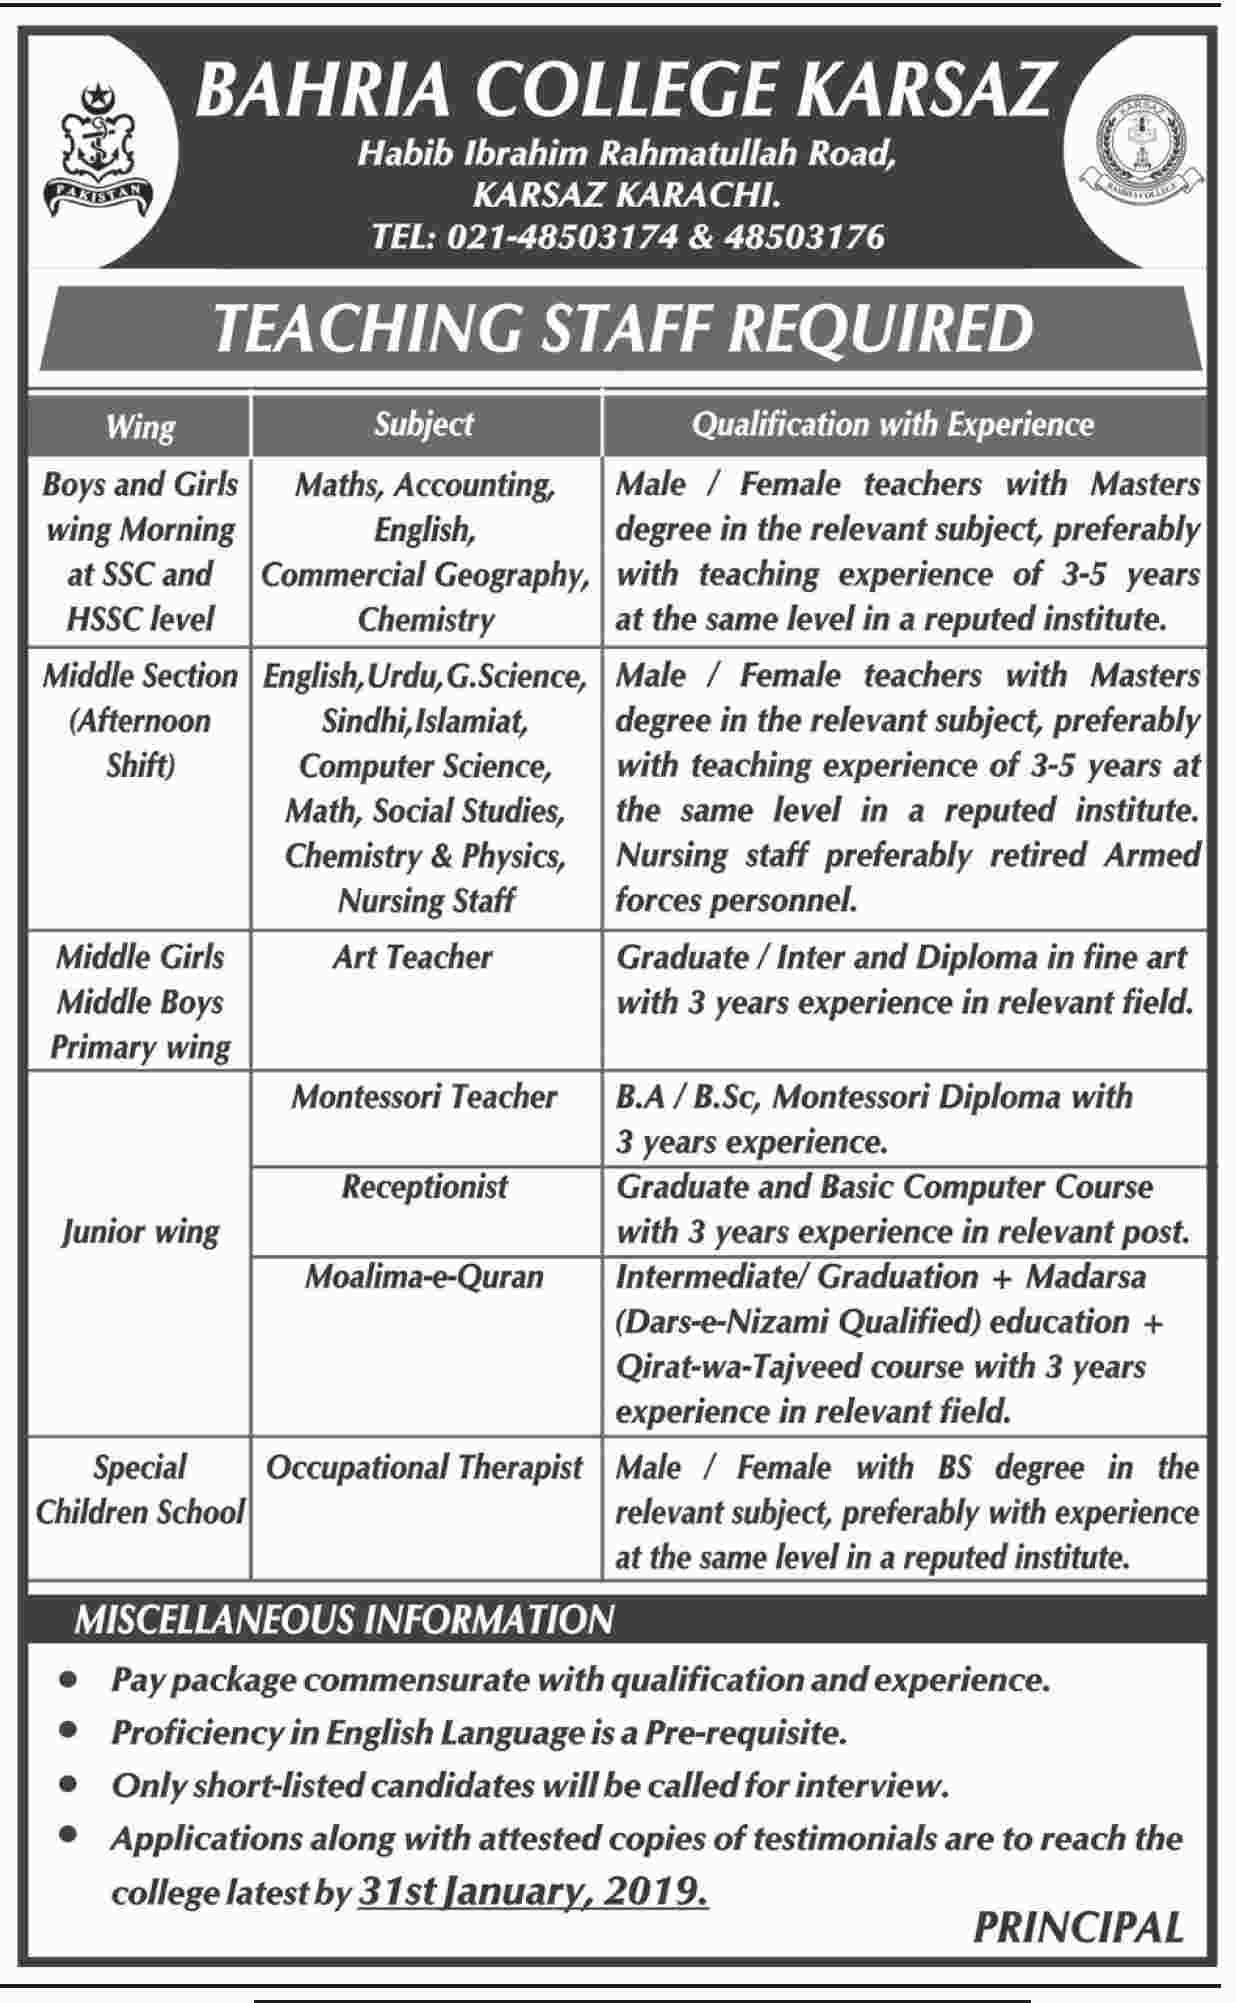 Bahria College Karsaz Teaching Staff Jobs 2019